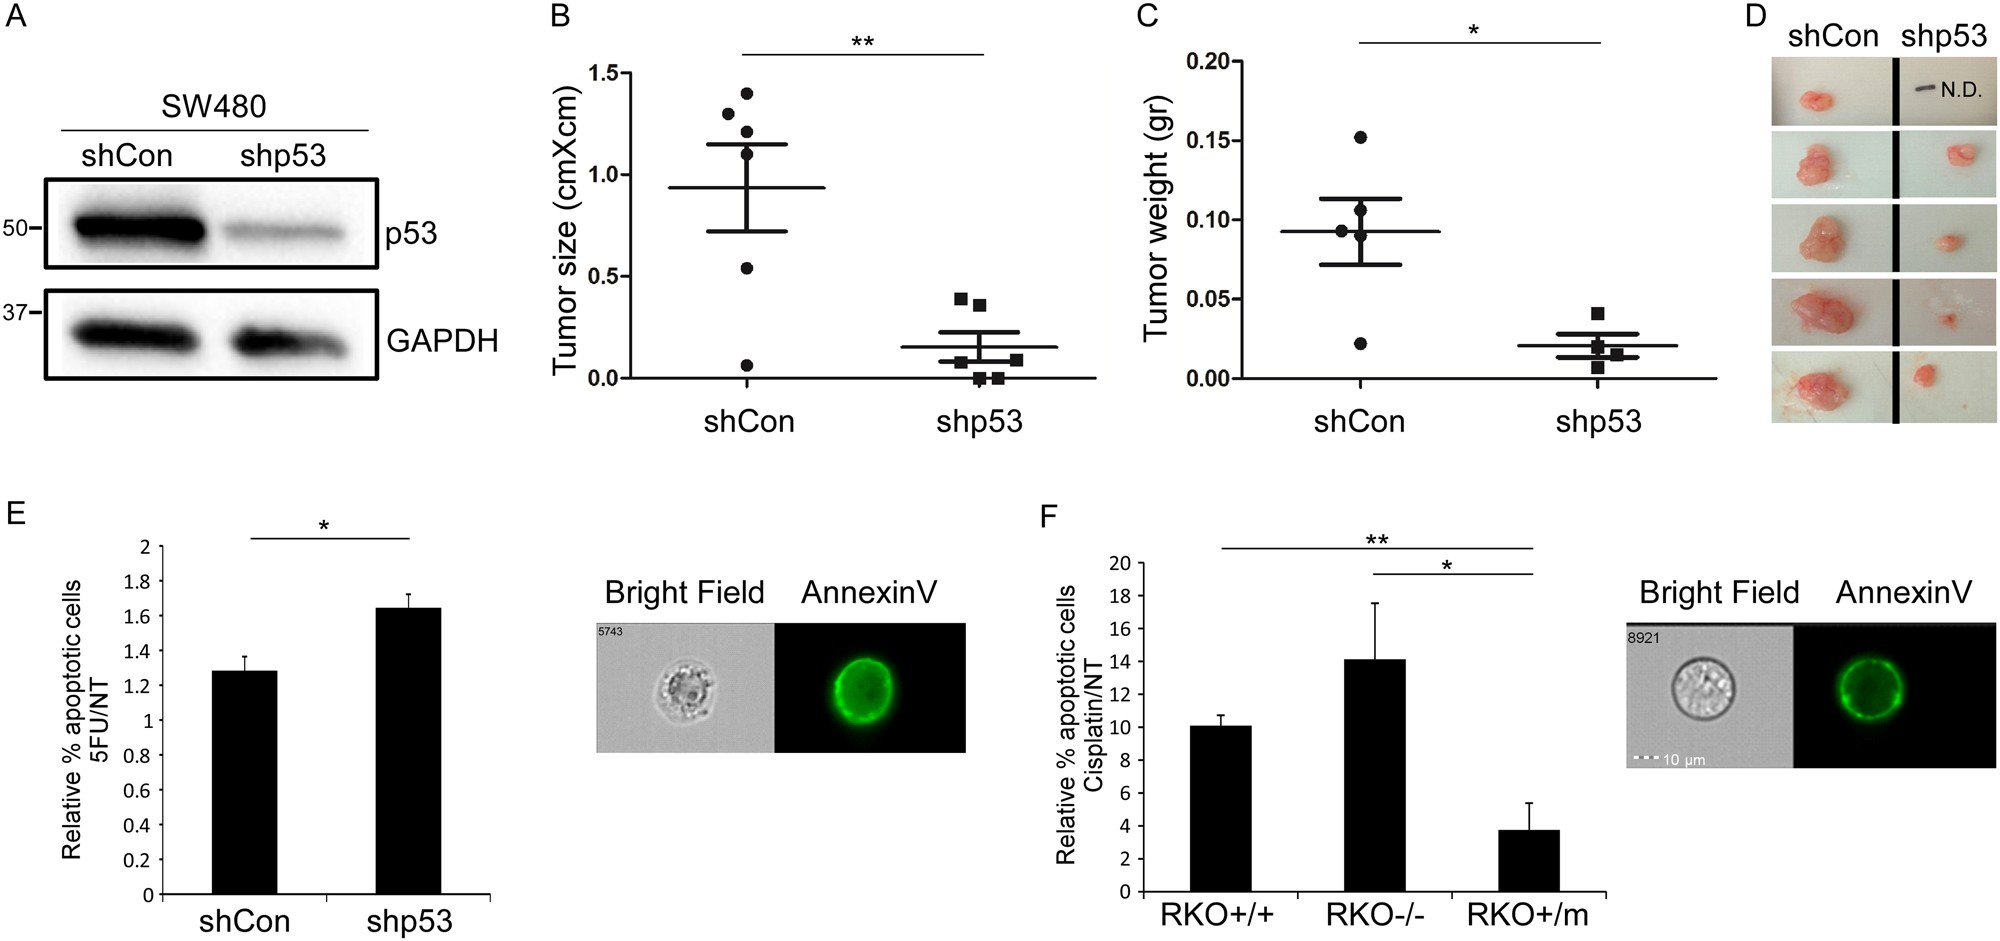 Mutant p53 gain of function underlies high expression levels of